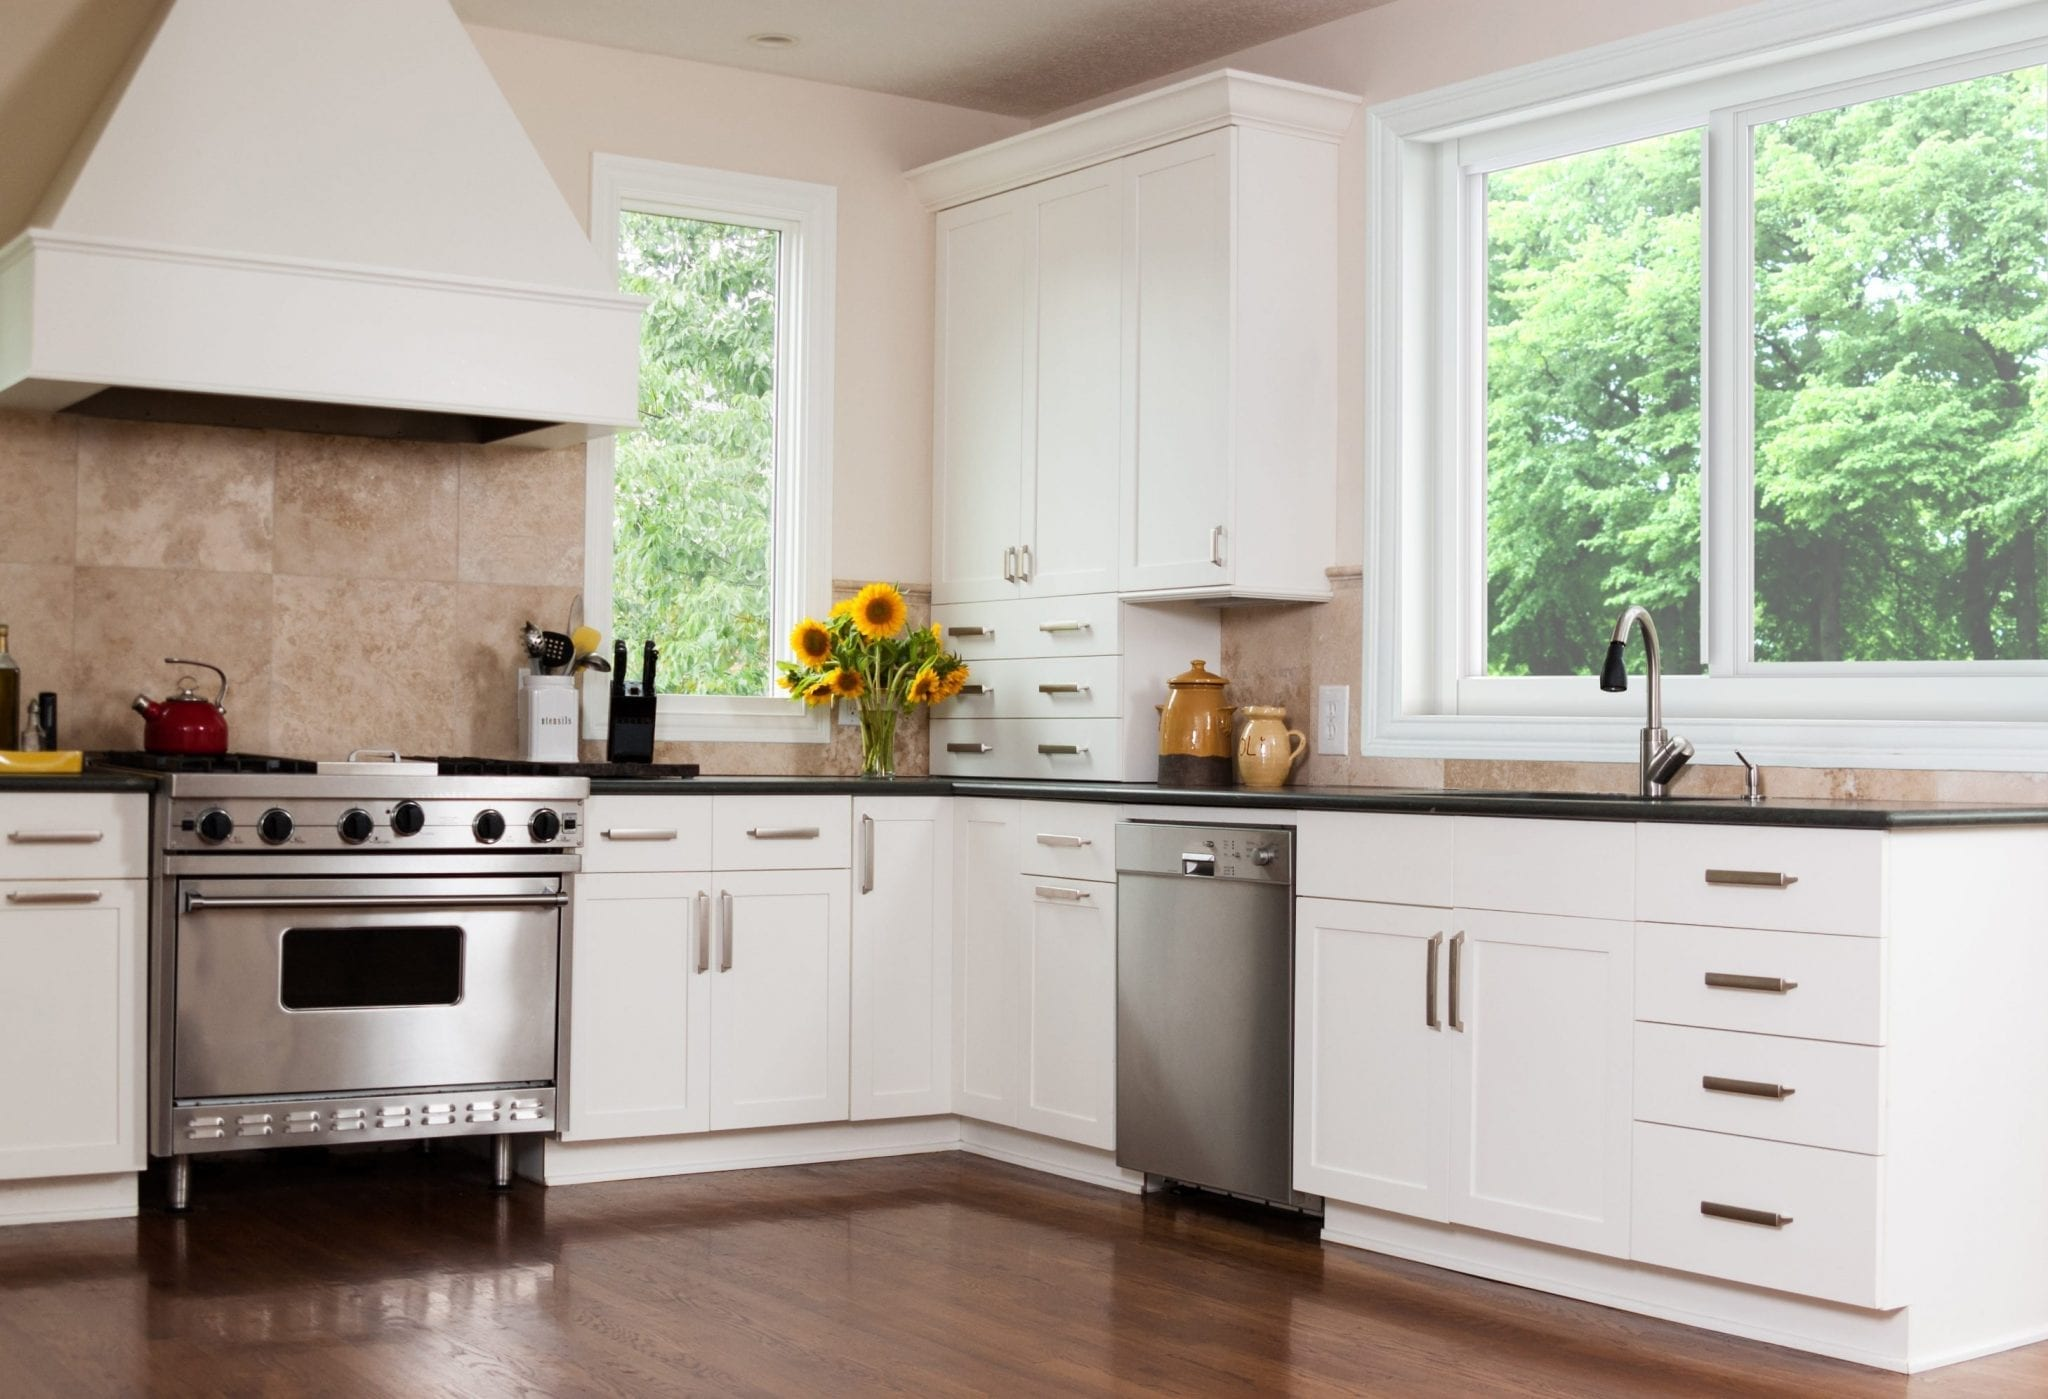 HORIZONTAL KITCHEN WINDOWS